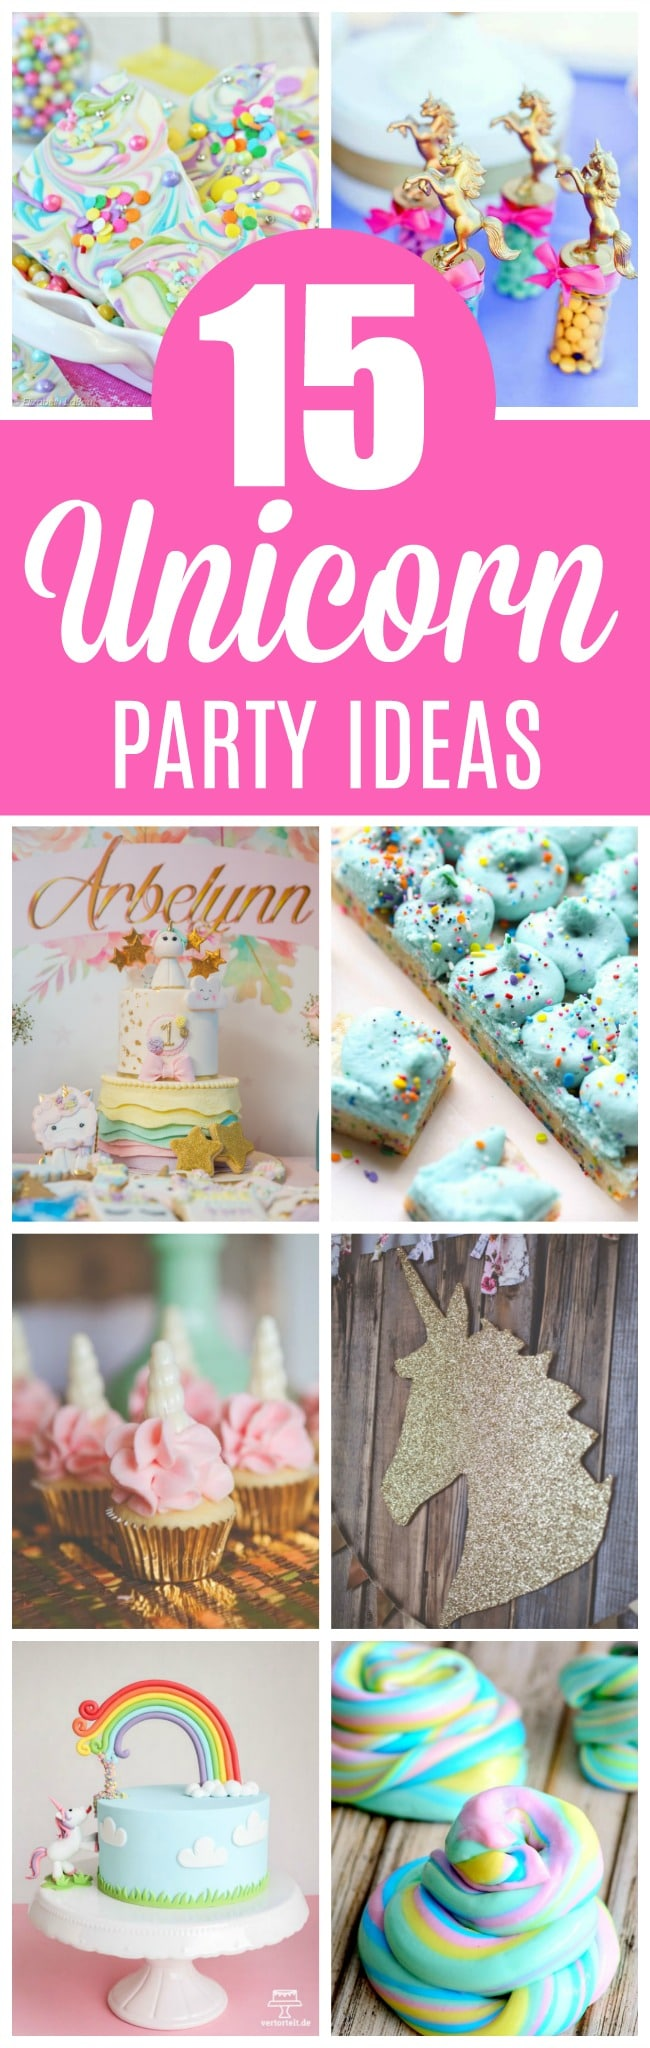 15 Magical Unicorn Party Ideas